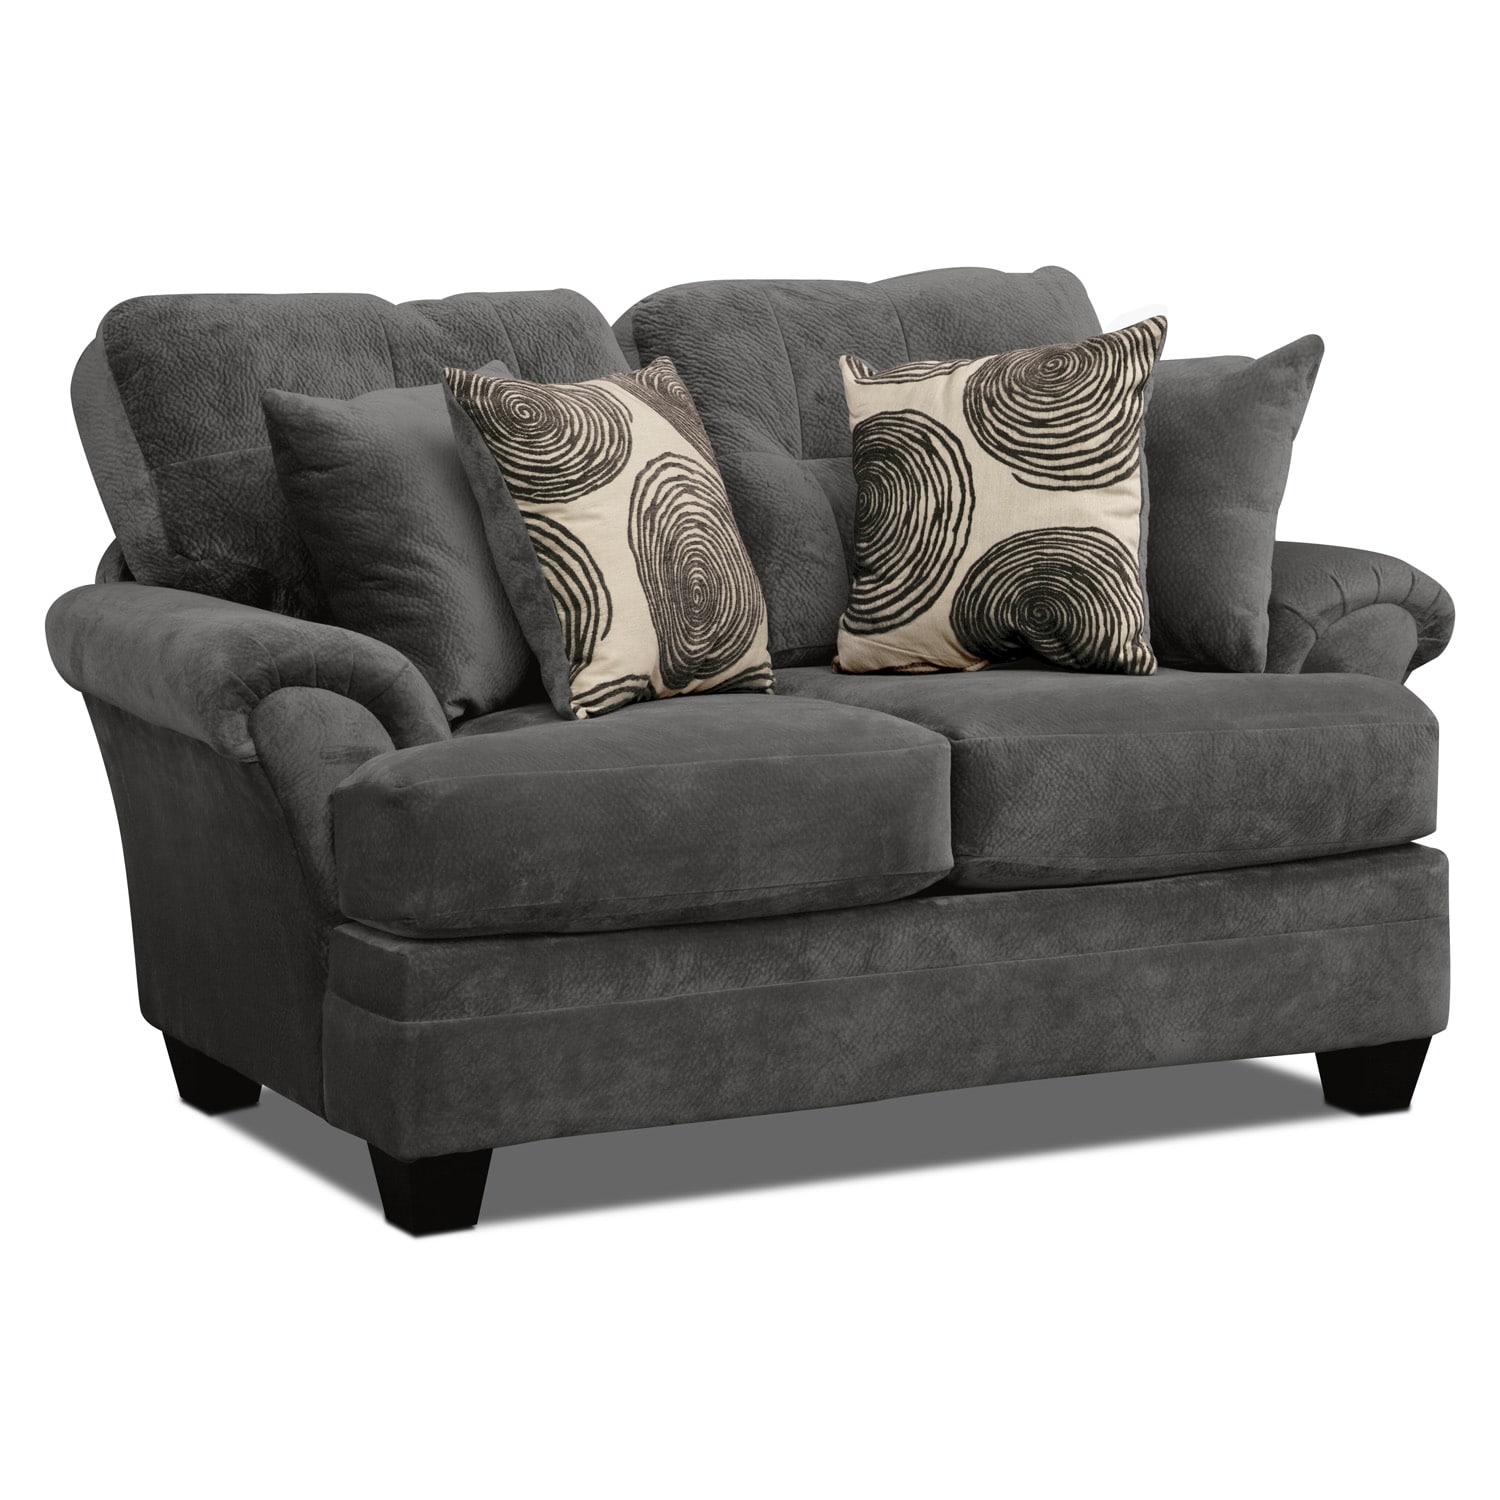 Cordelle Sofa And Loveseat Set Gray American Signature Furniture ~ Grey Sofa And Loveseat Sets